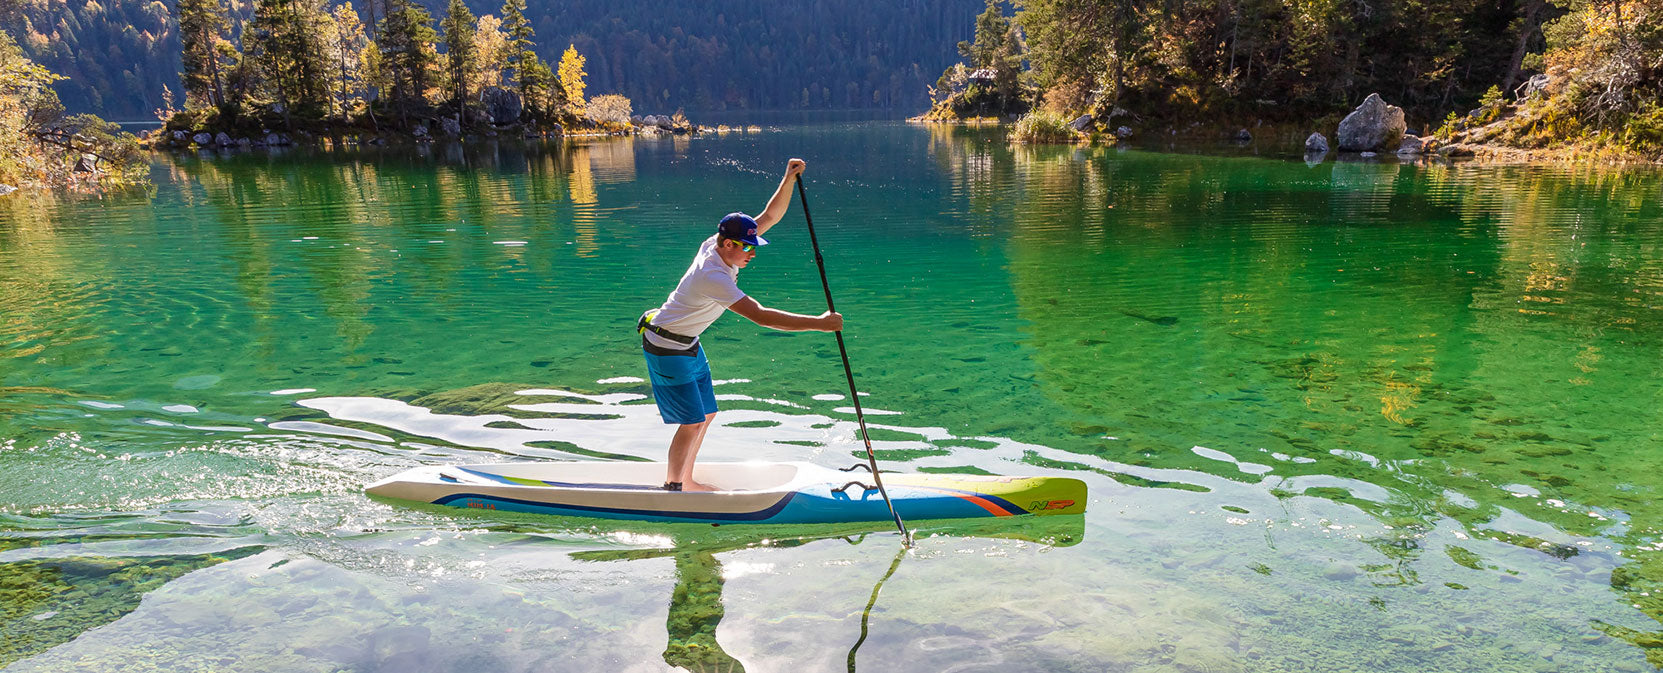 The Official East Coast NSP Performance Stand Up Paddle Board Test Center